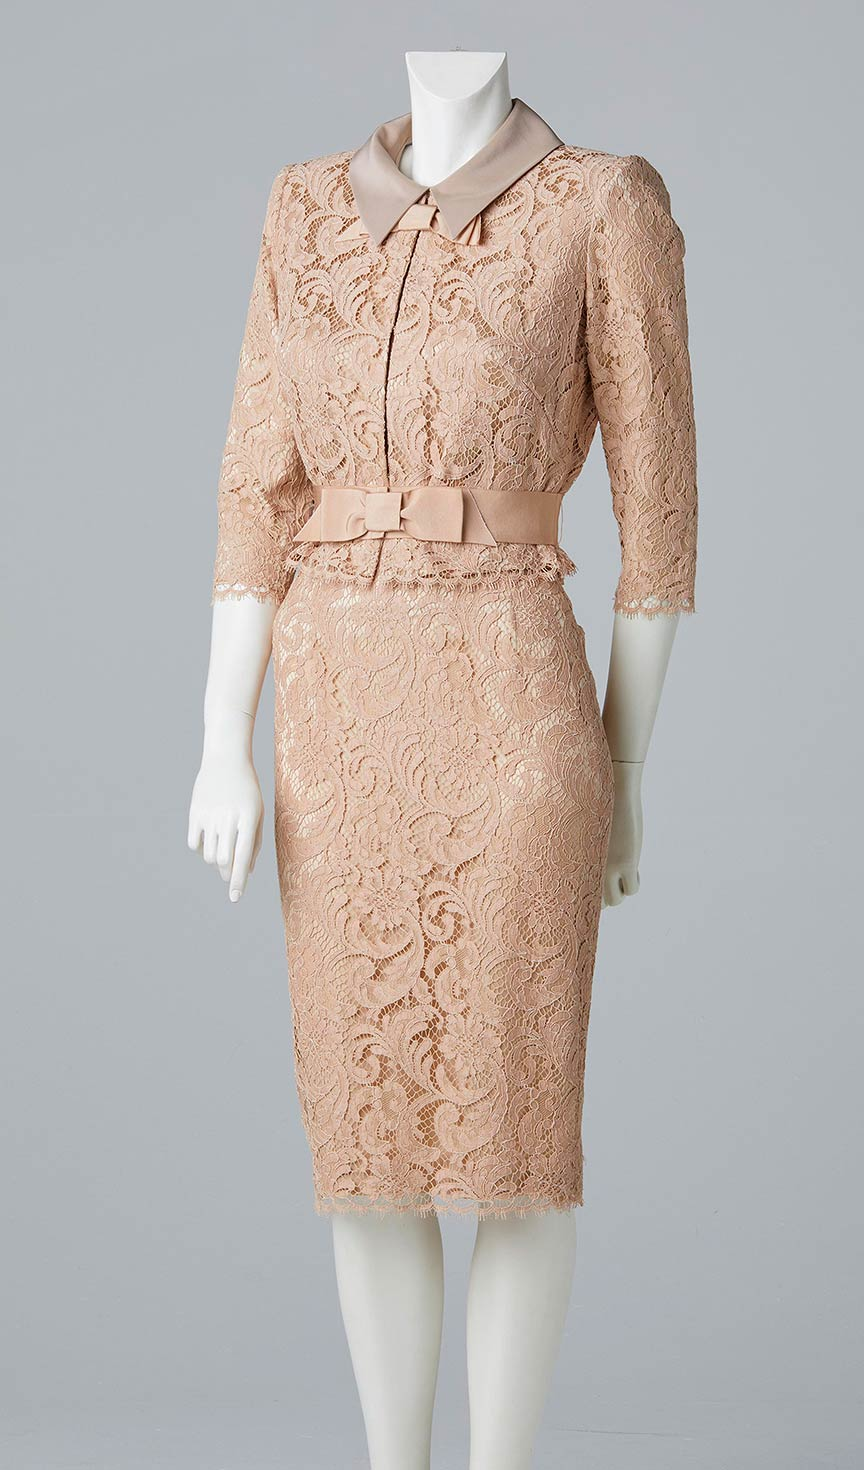 nude light pink lace pencil skirt and lace jacket mother of the bride occasional wear south west london allison rodger